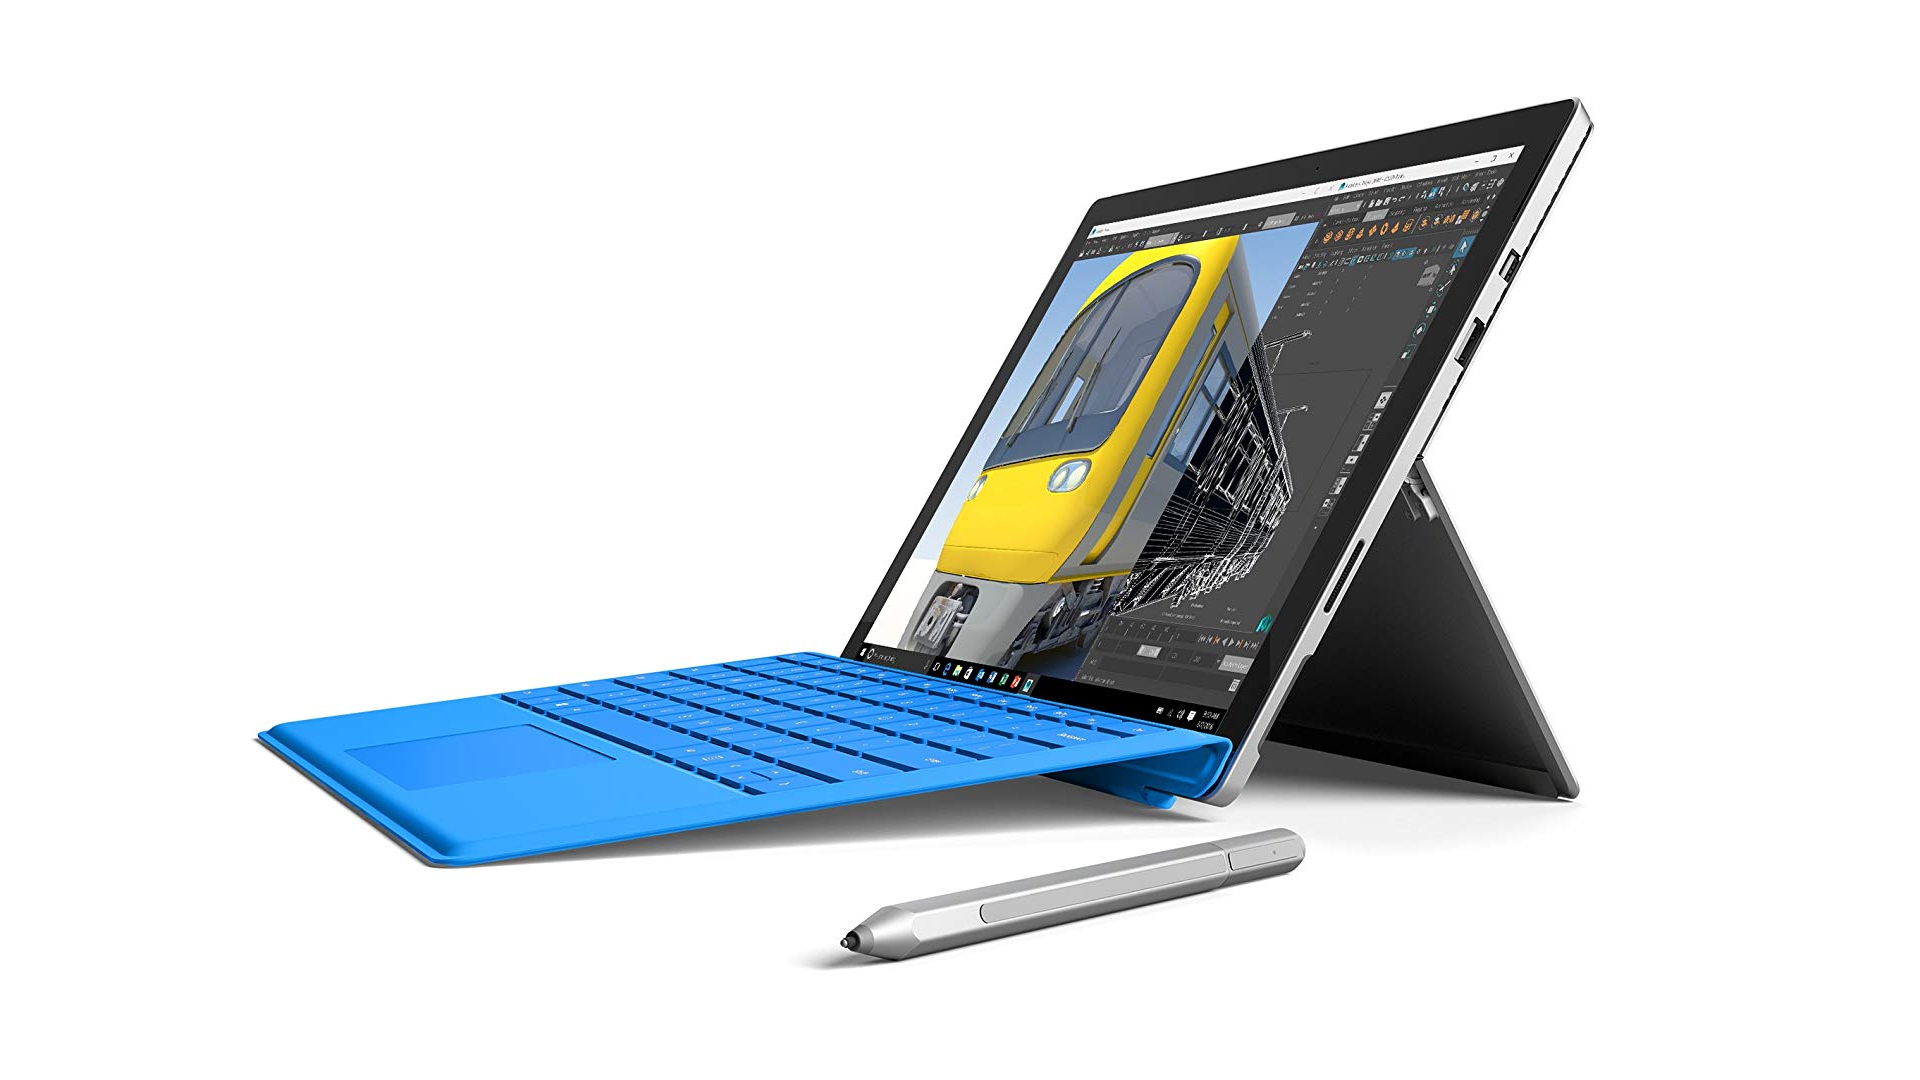 A Refurbished Surface Pro 4 and Surface Pen.